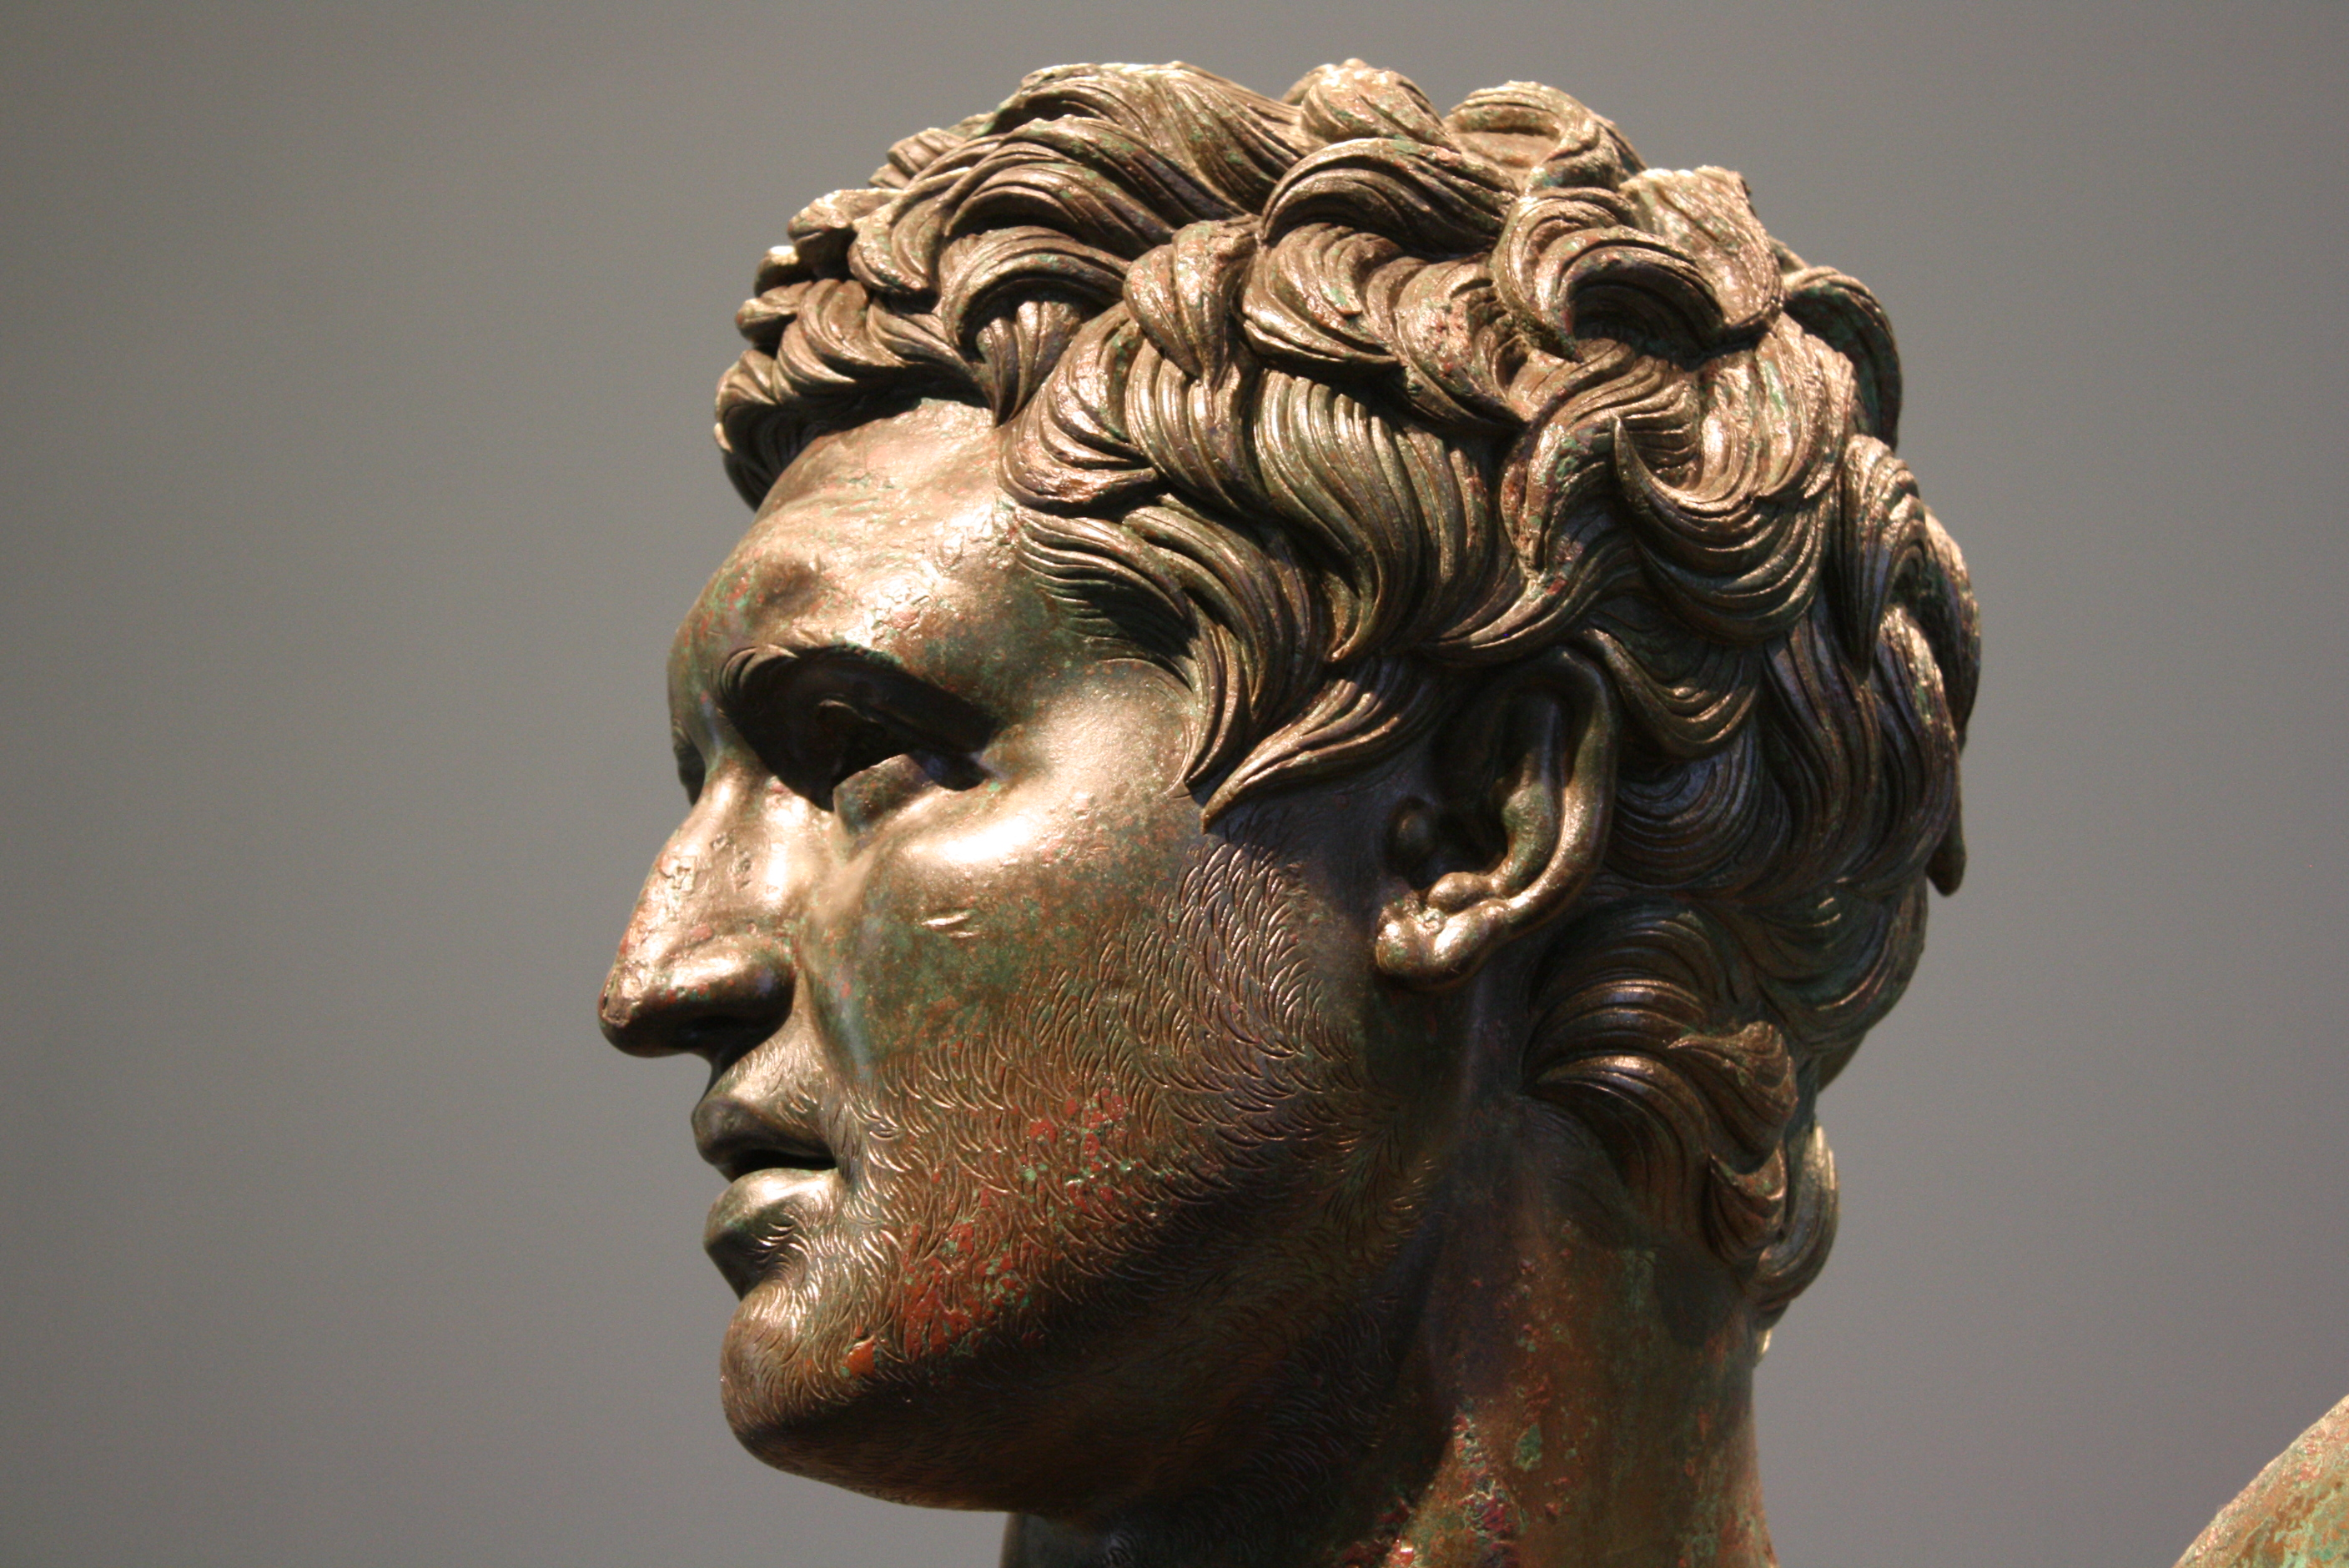 ancient history alexand the great A basic facts profile of the ancient greek military leader alexander the great what made this legendary ruler so great.